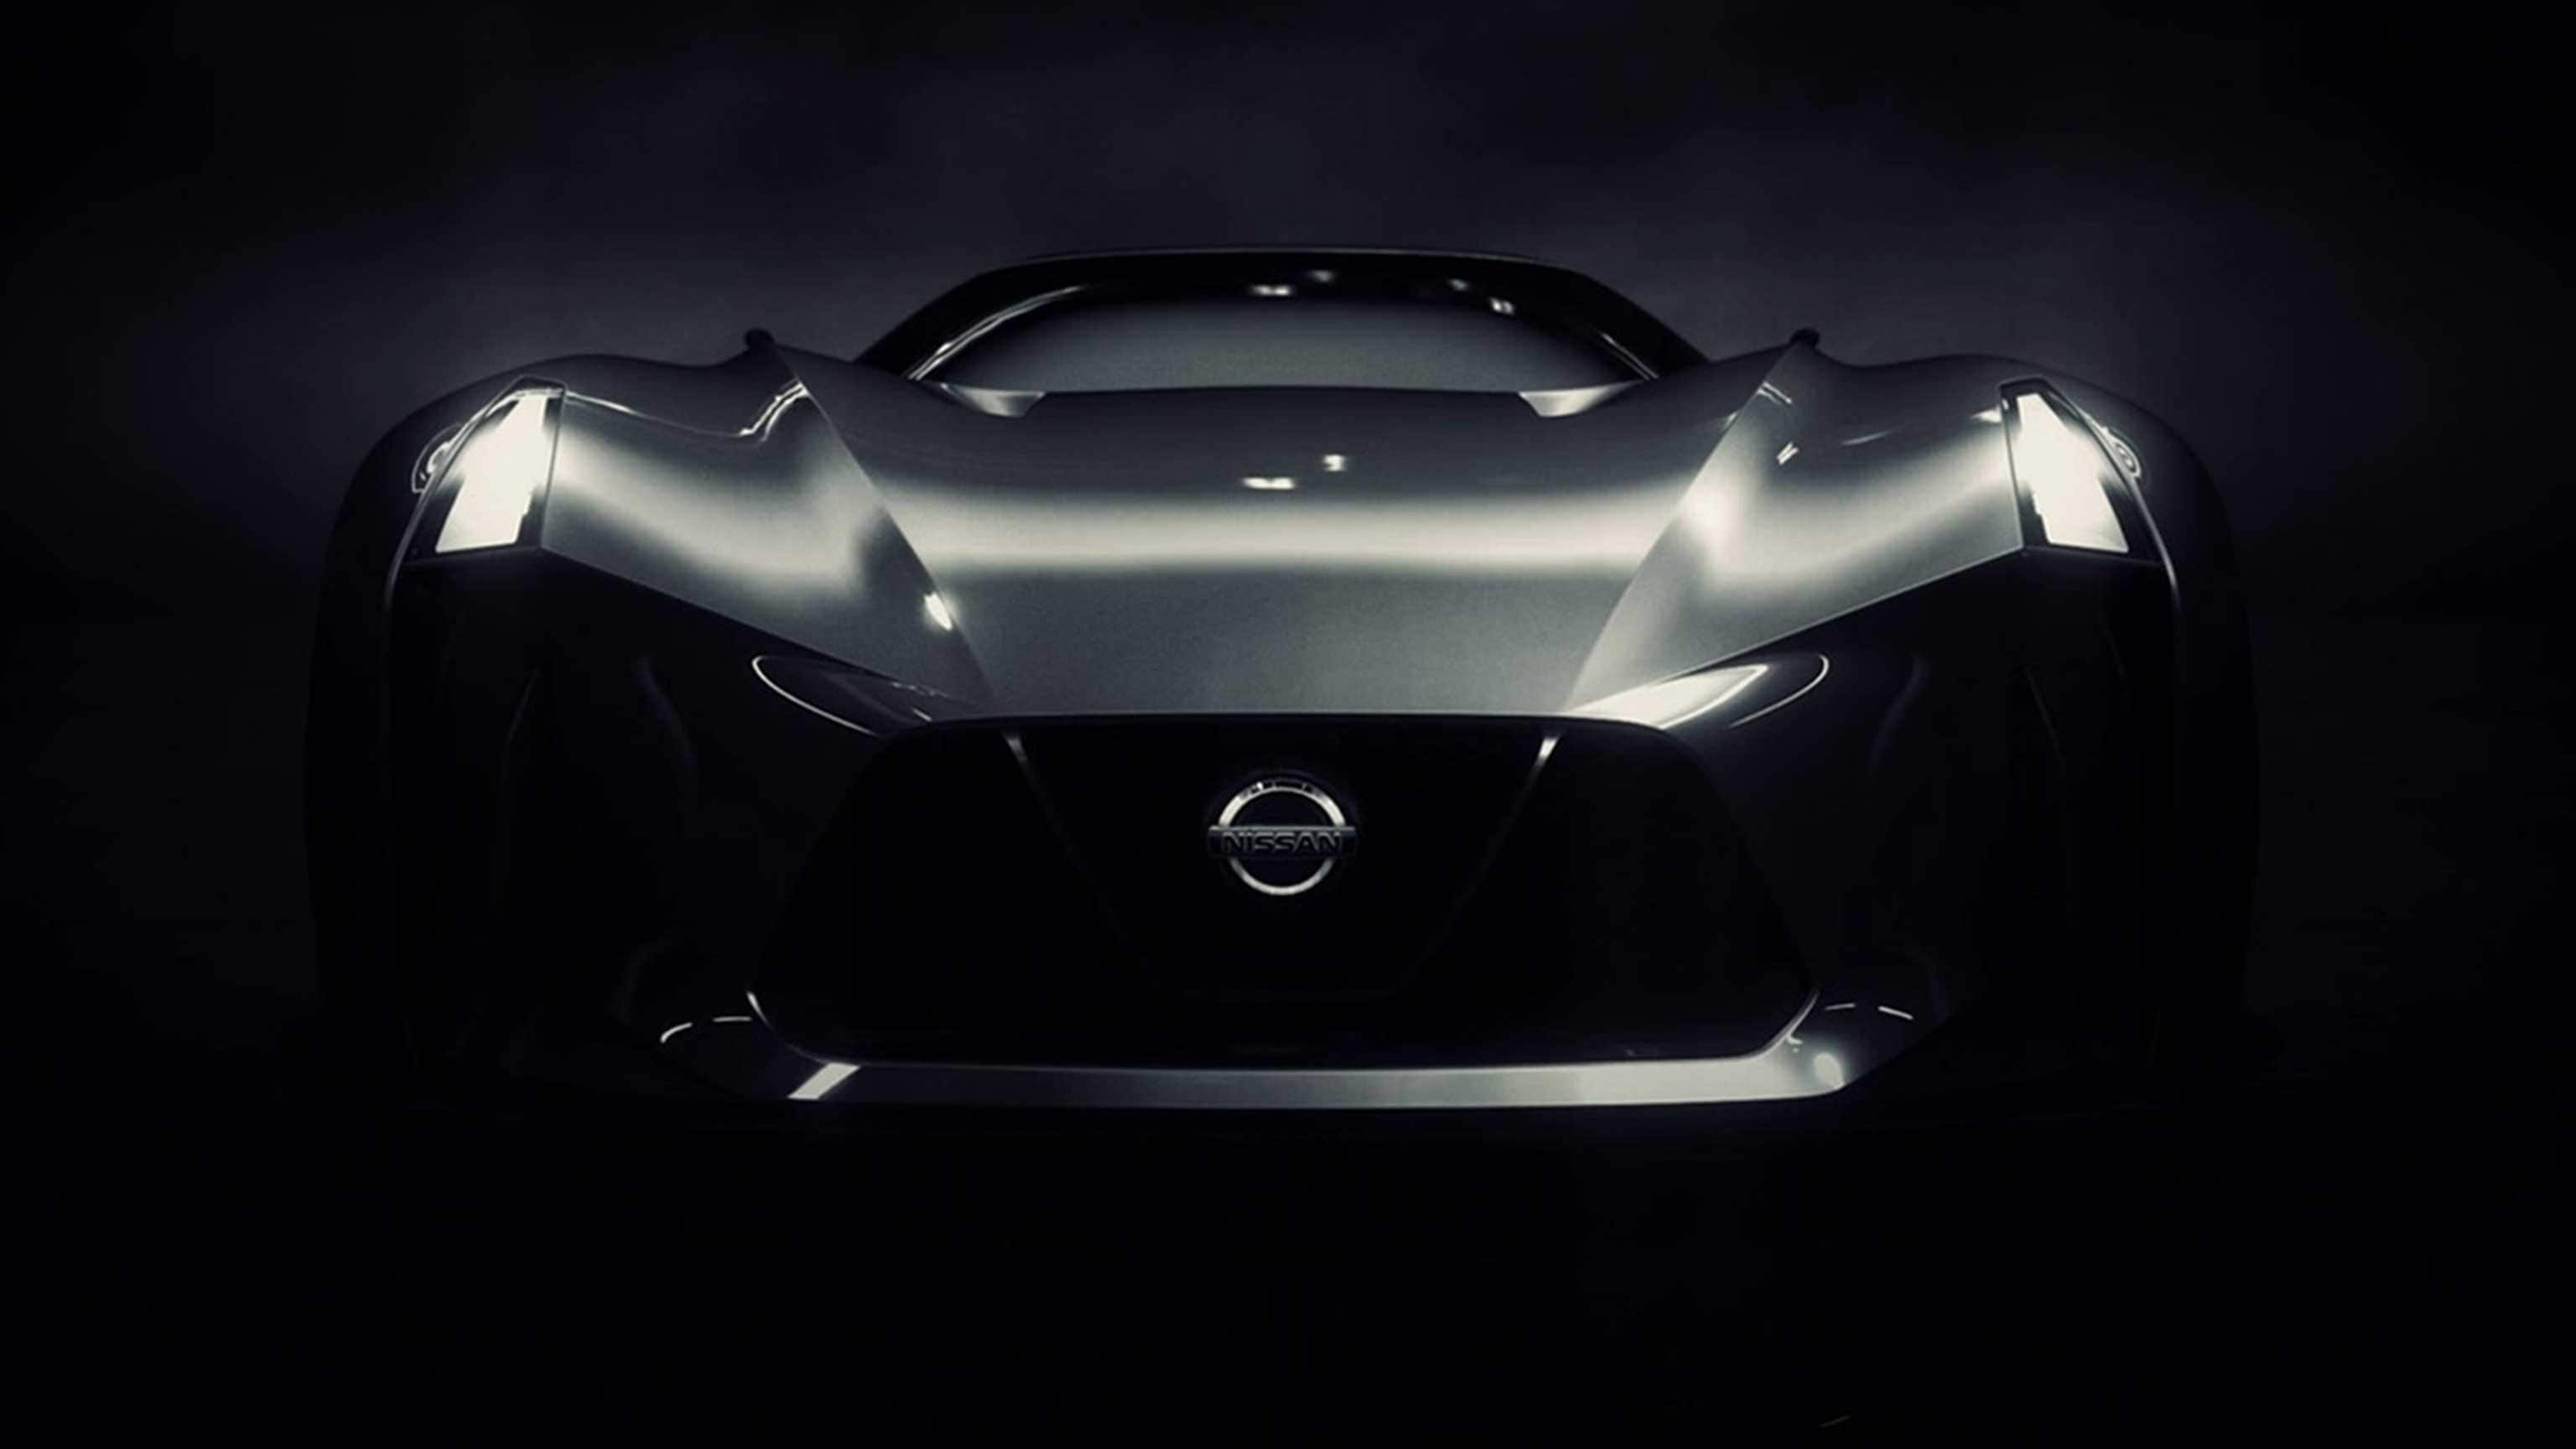 40 New Nissan Vision 2020 Release Date